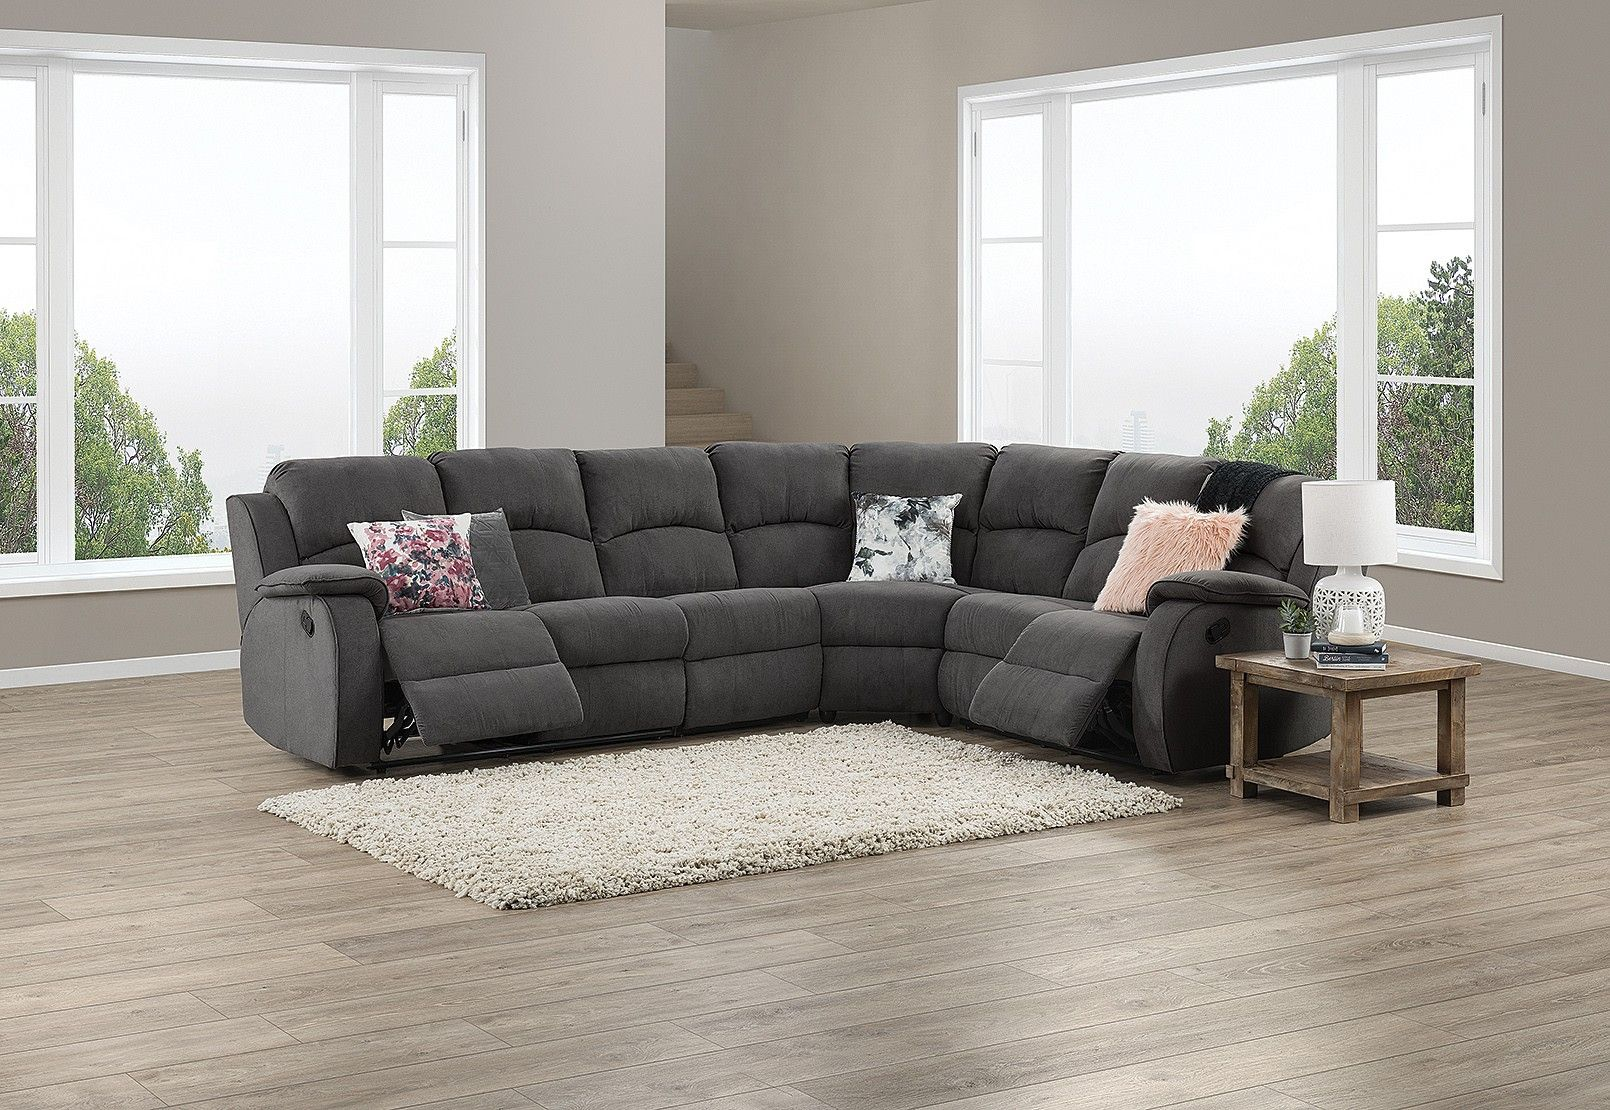 Saloon Fabric Corner Lounge With Inbuilt Recliners Amart Furniture Lounge Grey Lounge Furniture